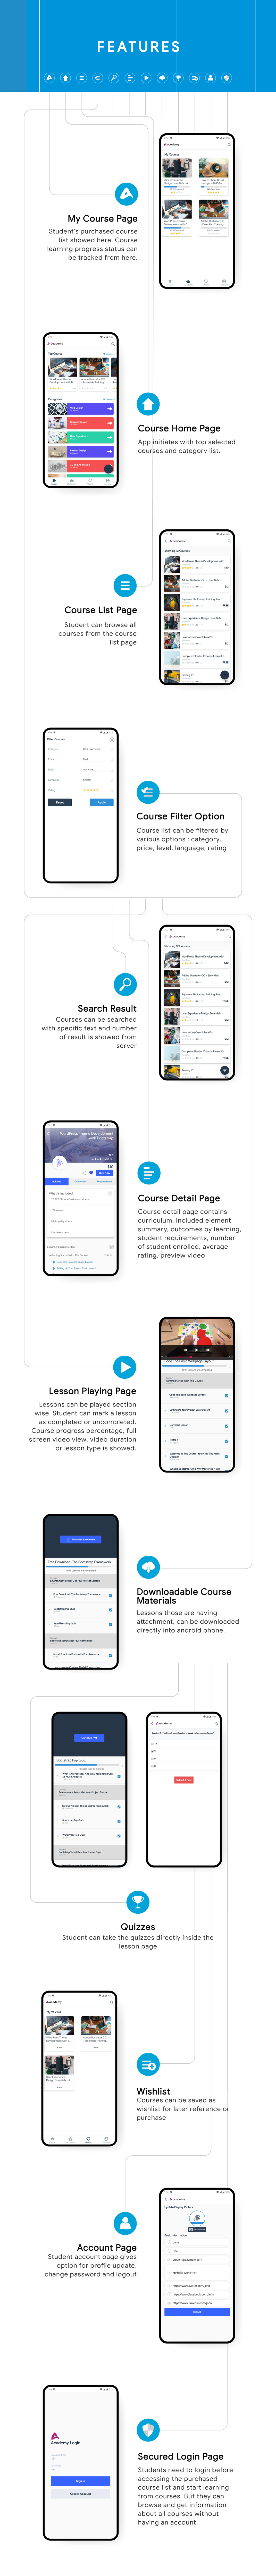 Academy Lms Student Android App - 5